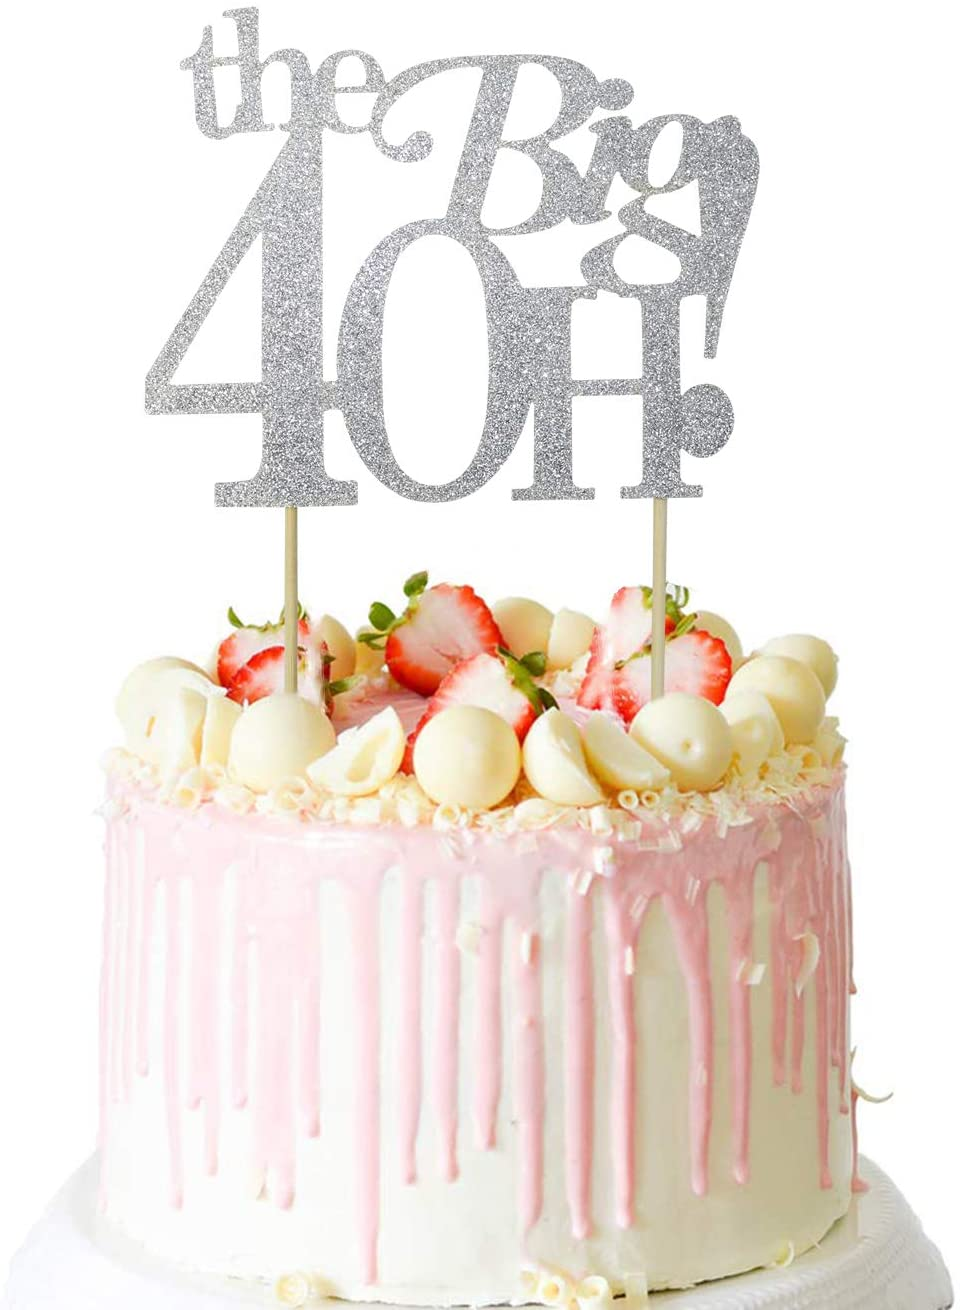 Guoguoxia Silver Glitter The Big 40H Cake Topper 40 & Fabulous Cake Topper - 40th Birthday Party Decoration Sign - Adult Birthday Party Supplies